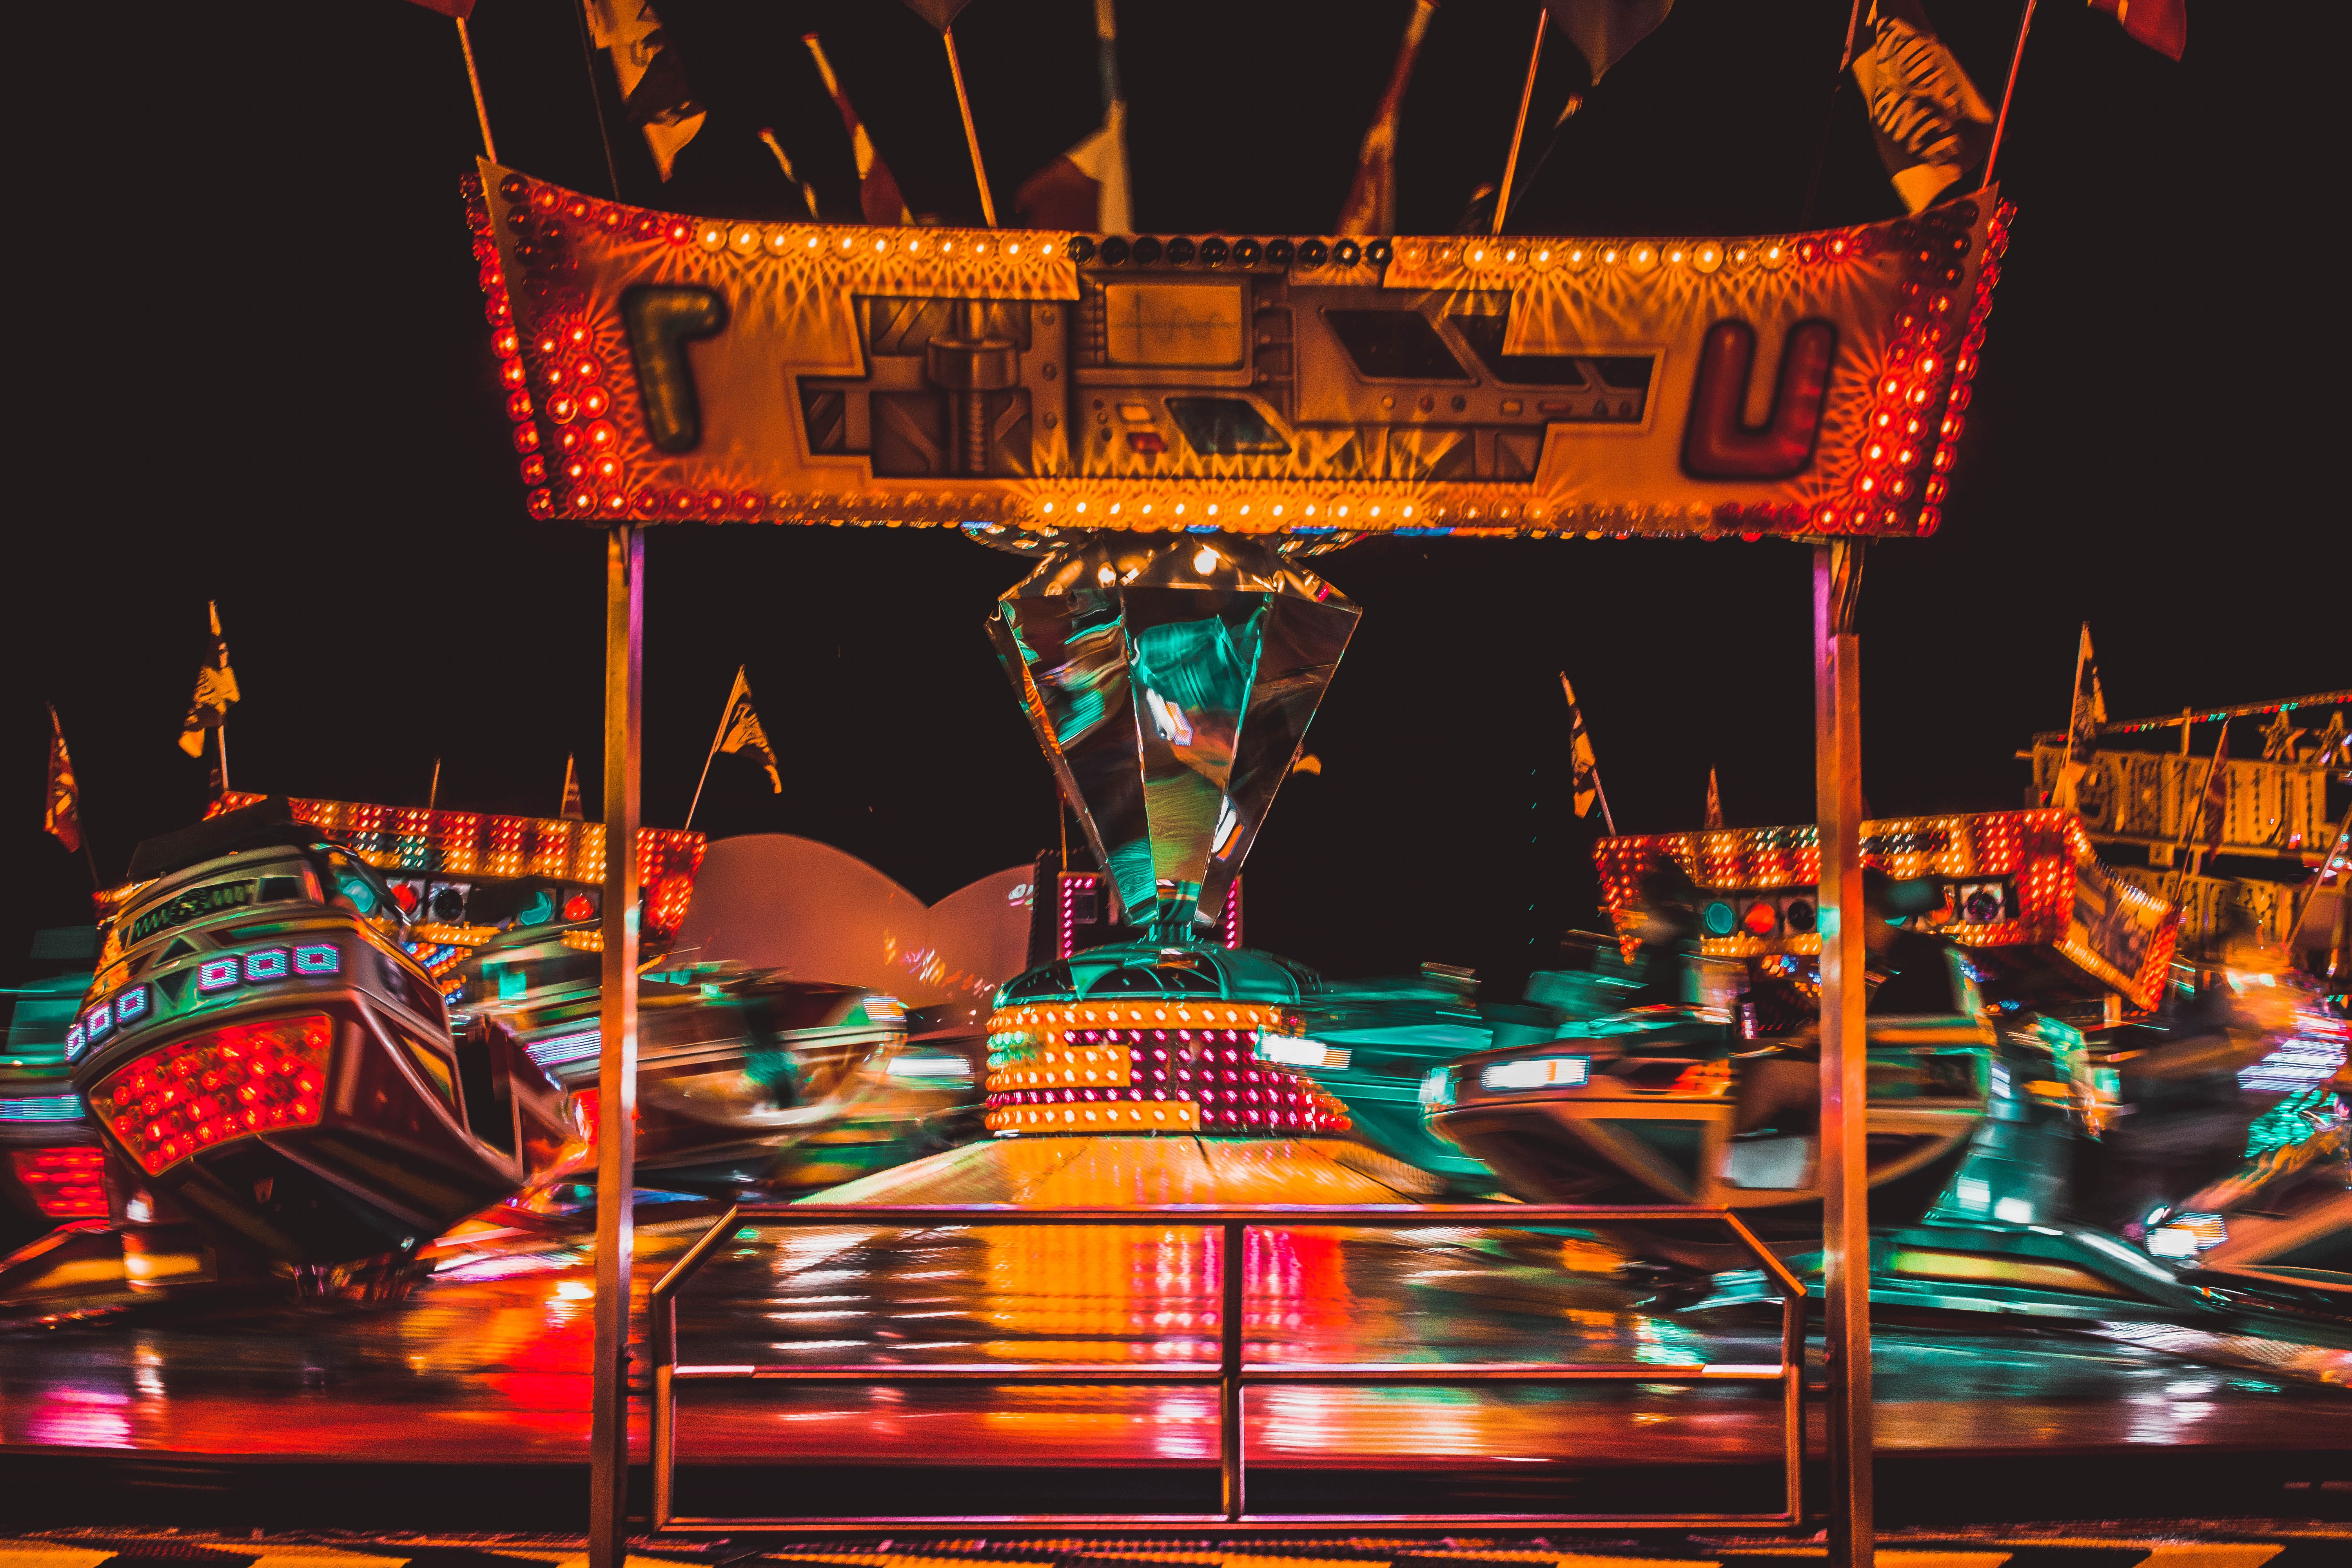 Panning Photography of Carousel